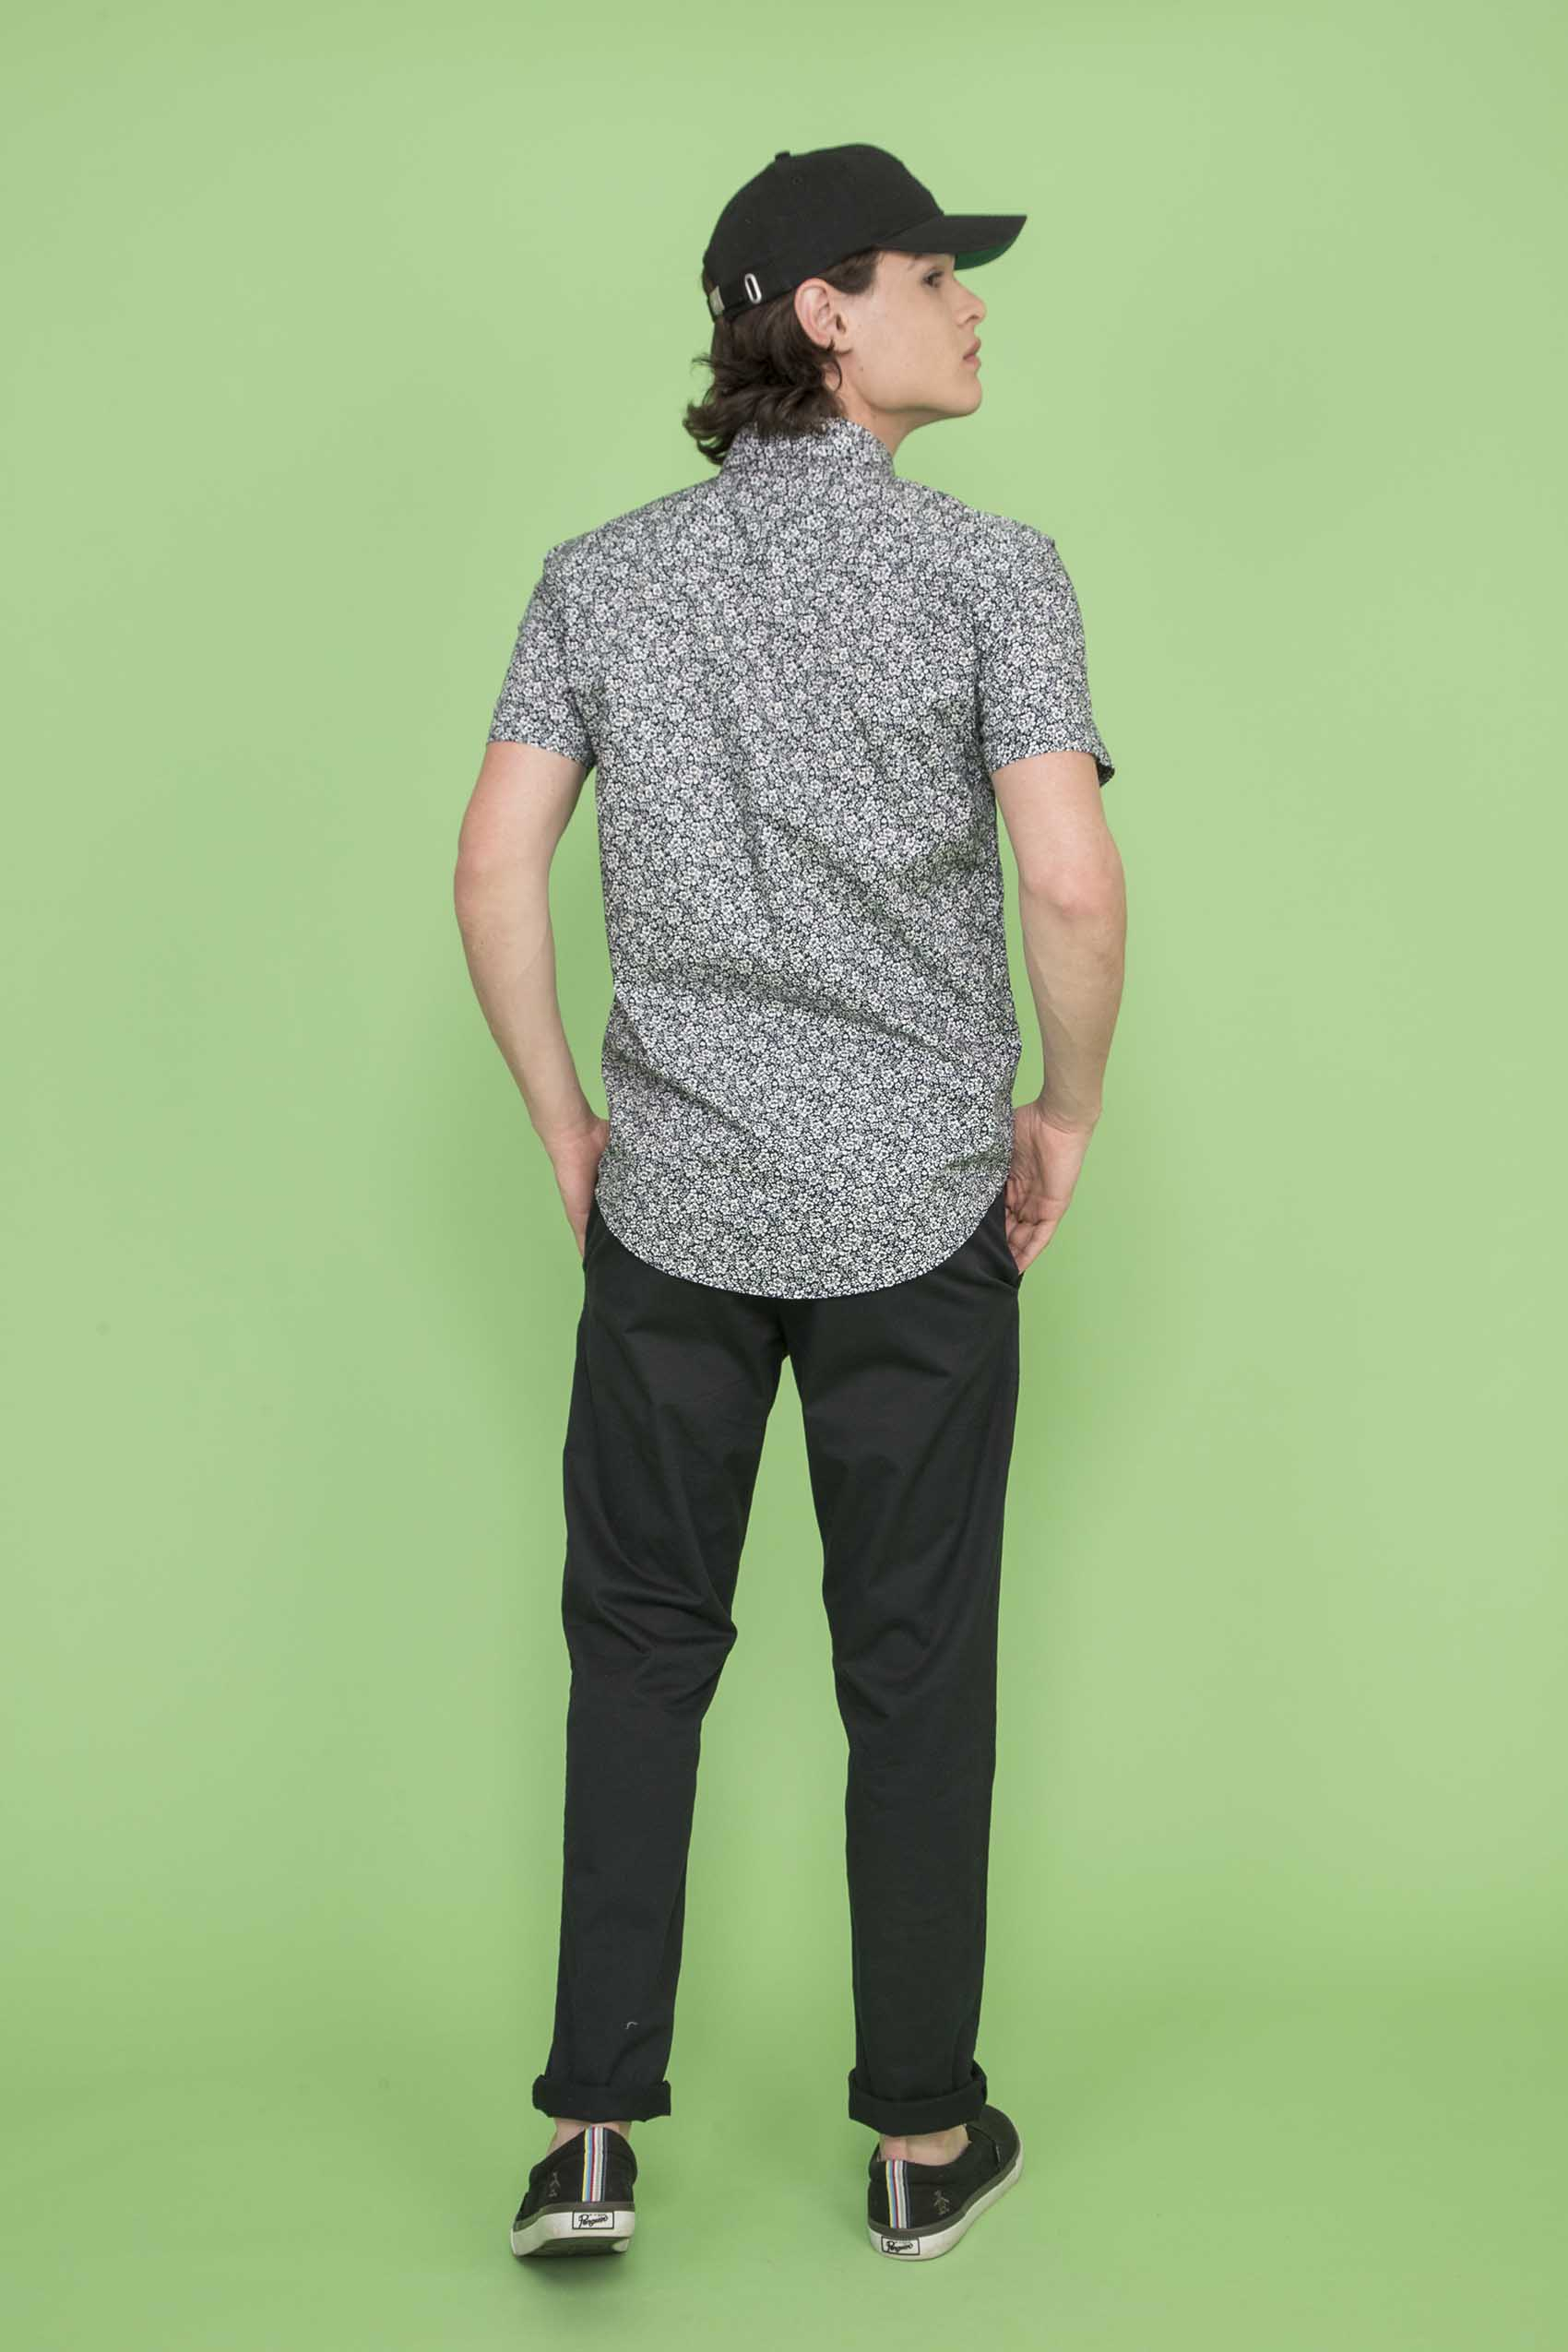 penguin_ss-small-flowers-print-shirt_45-14-2021__picture-17043